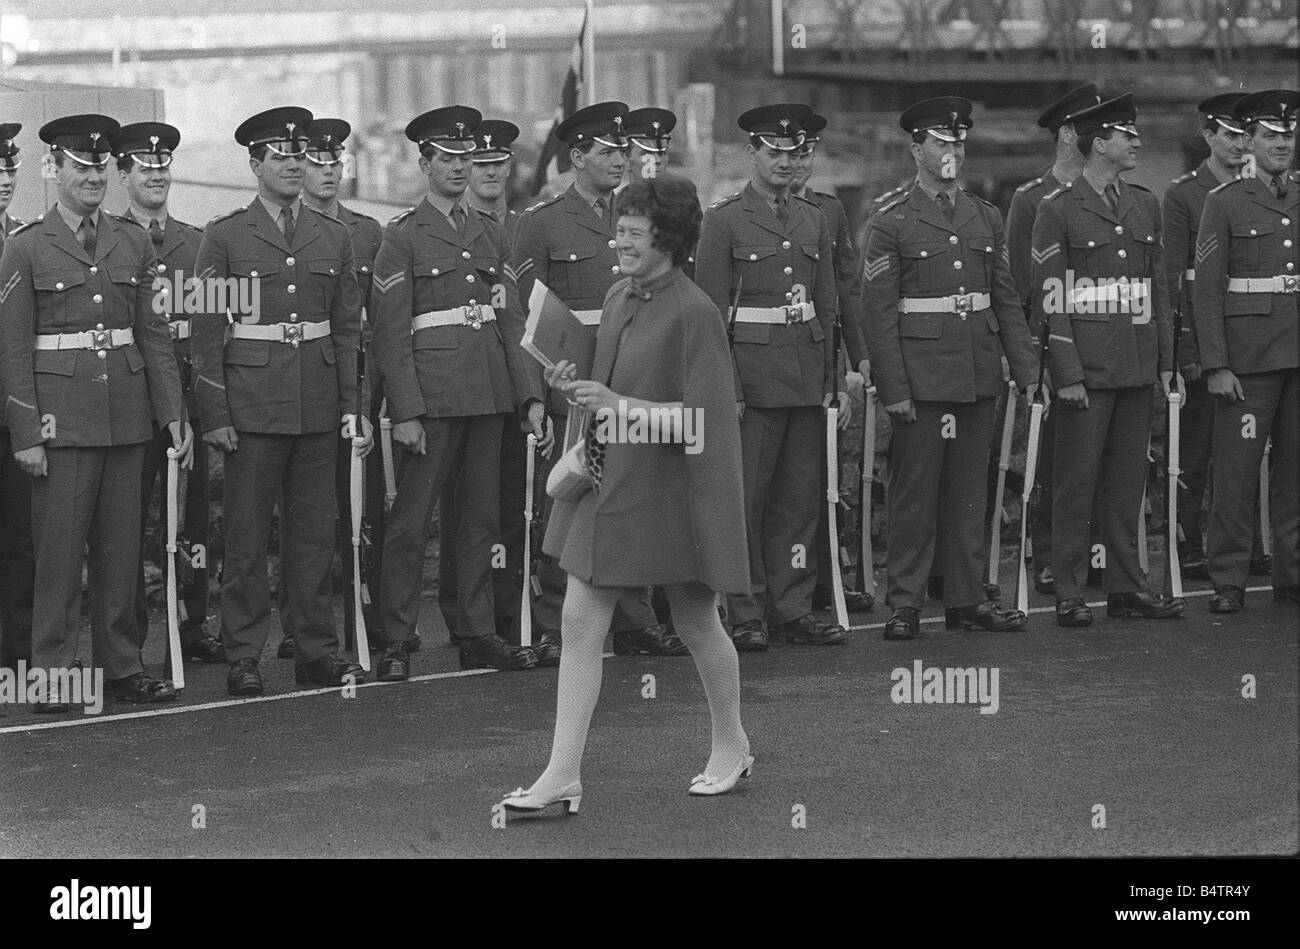 Investiture rehearsals Soldiers smile as a lady in a mine dress and coat walks past their parade line up 1 7 69 - Stock Image